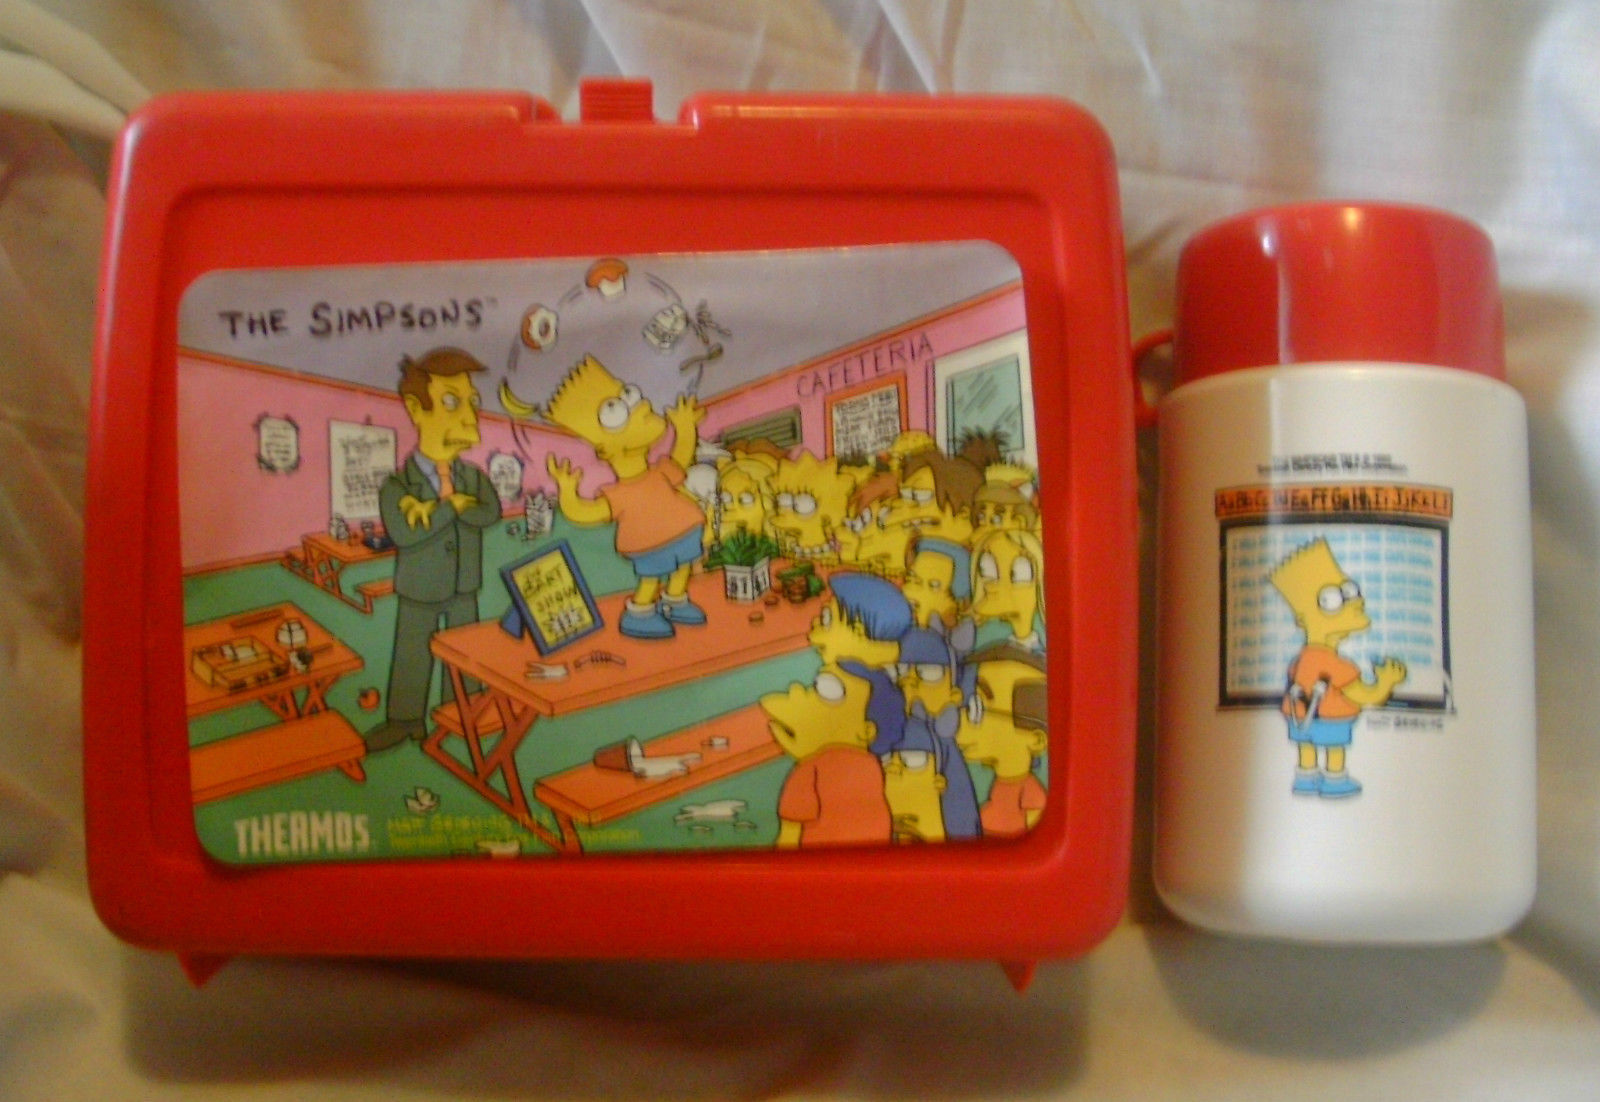 The Simpsons 1990 Lunch Box with Thermos by Thermos Co